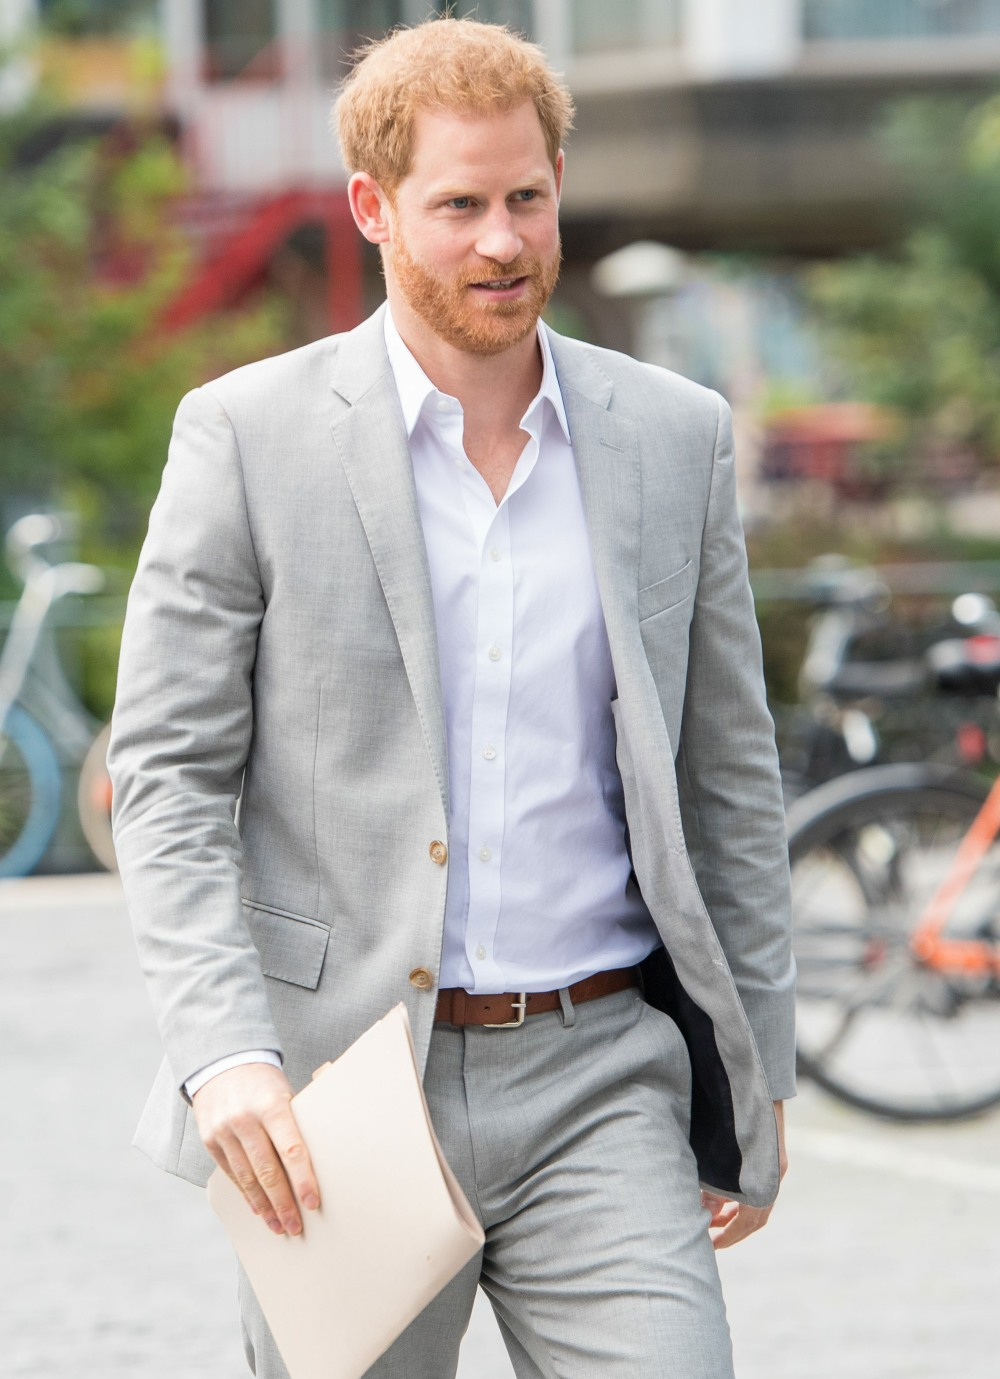 Prince Harry launches new partnershipPhoto: Albert Nieboer / Netherlands OUT / Point de Vue OUT